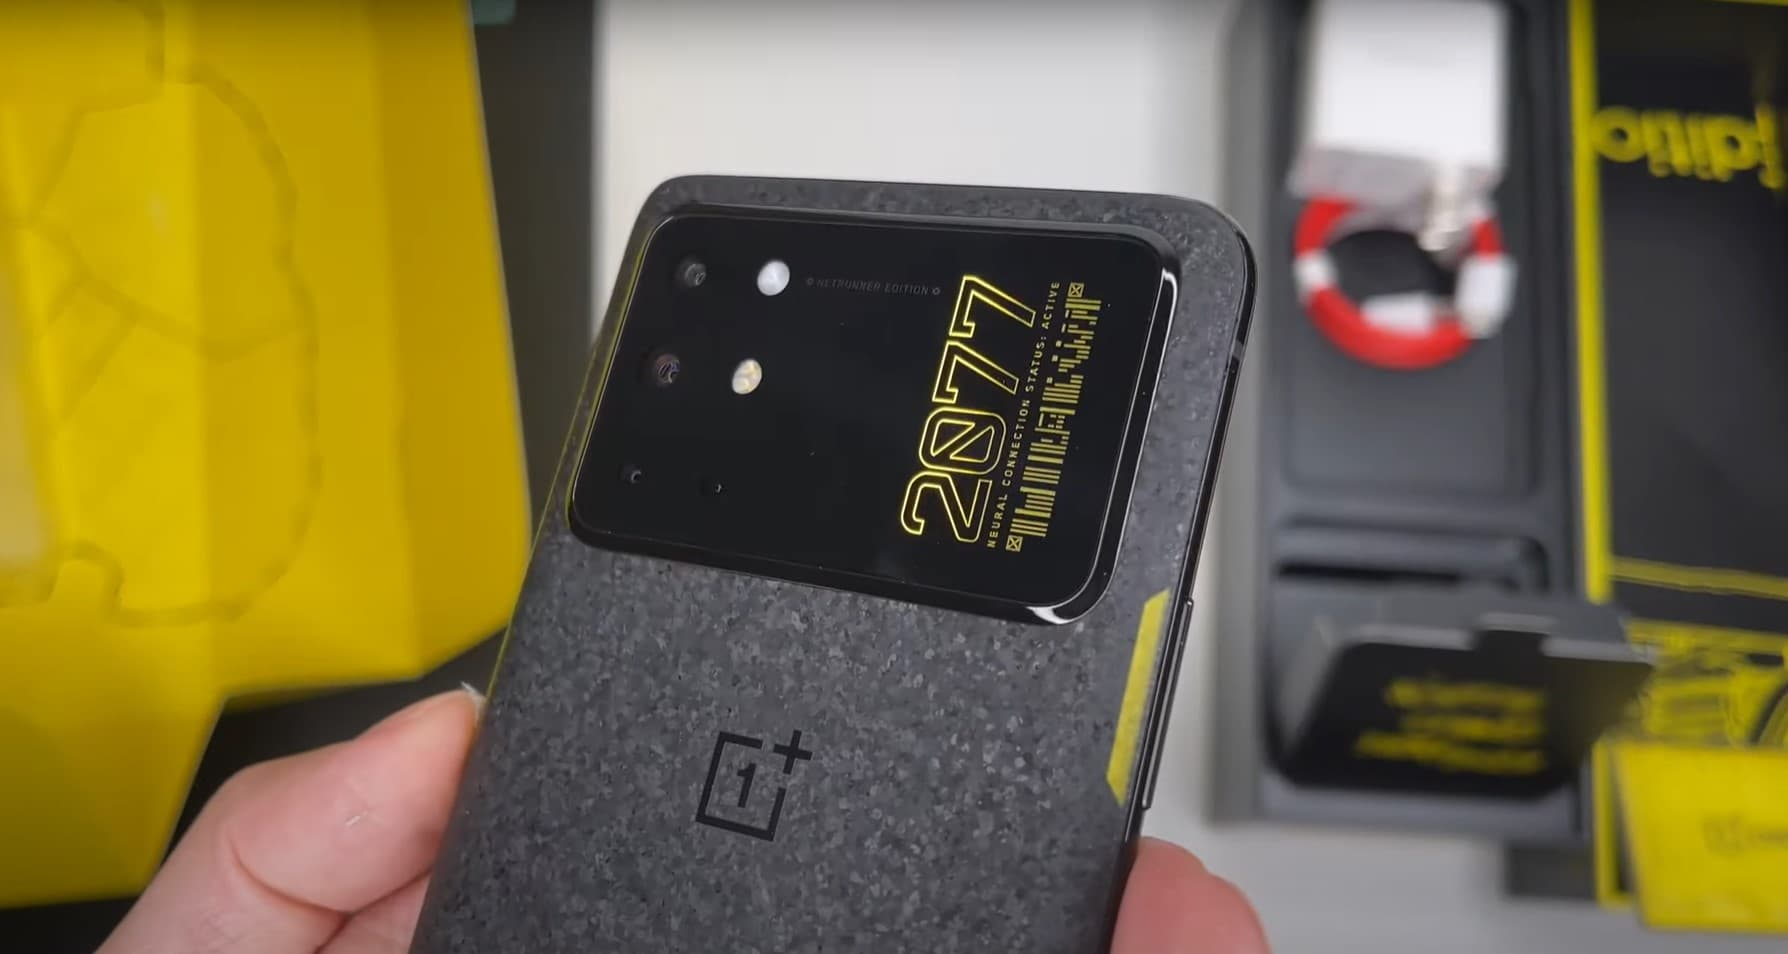 OnePlus 8T Cyberpunk 2077 androidsage